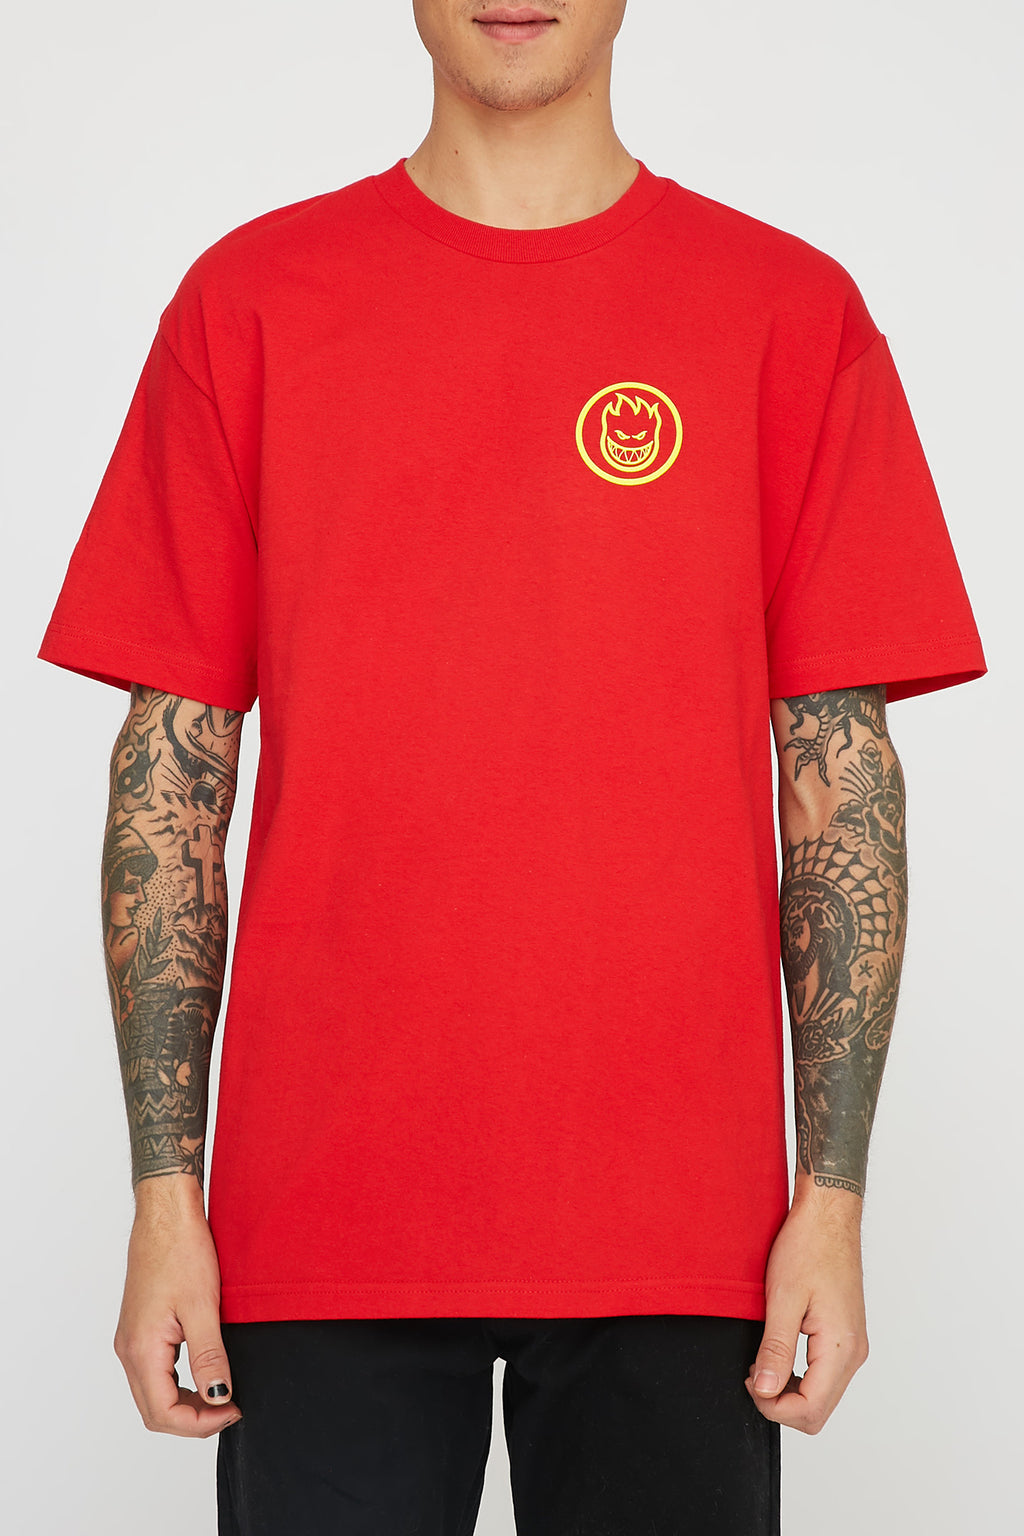 Spitfire Mens Classic Red Swirl T-Shirt